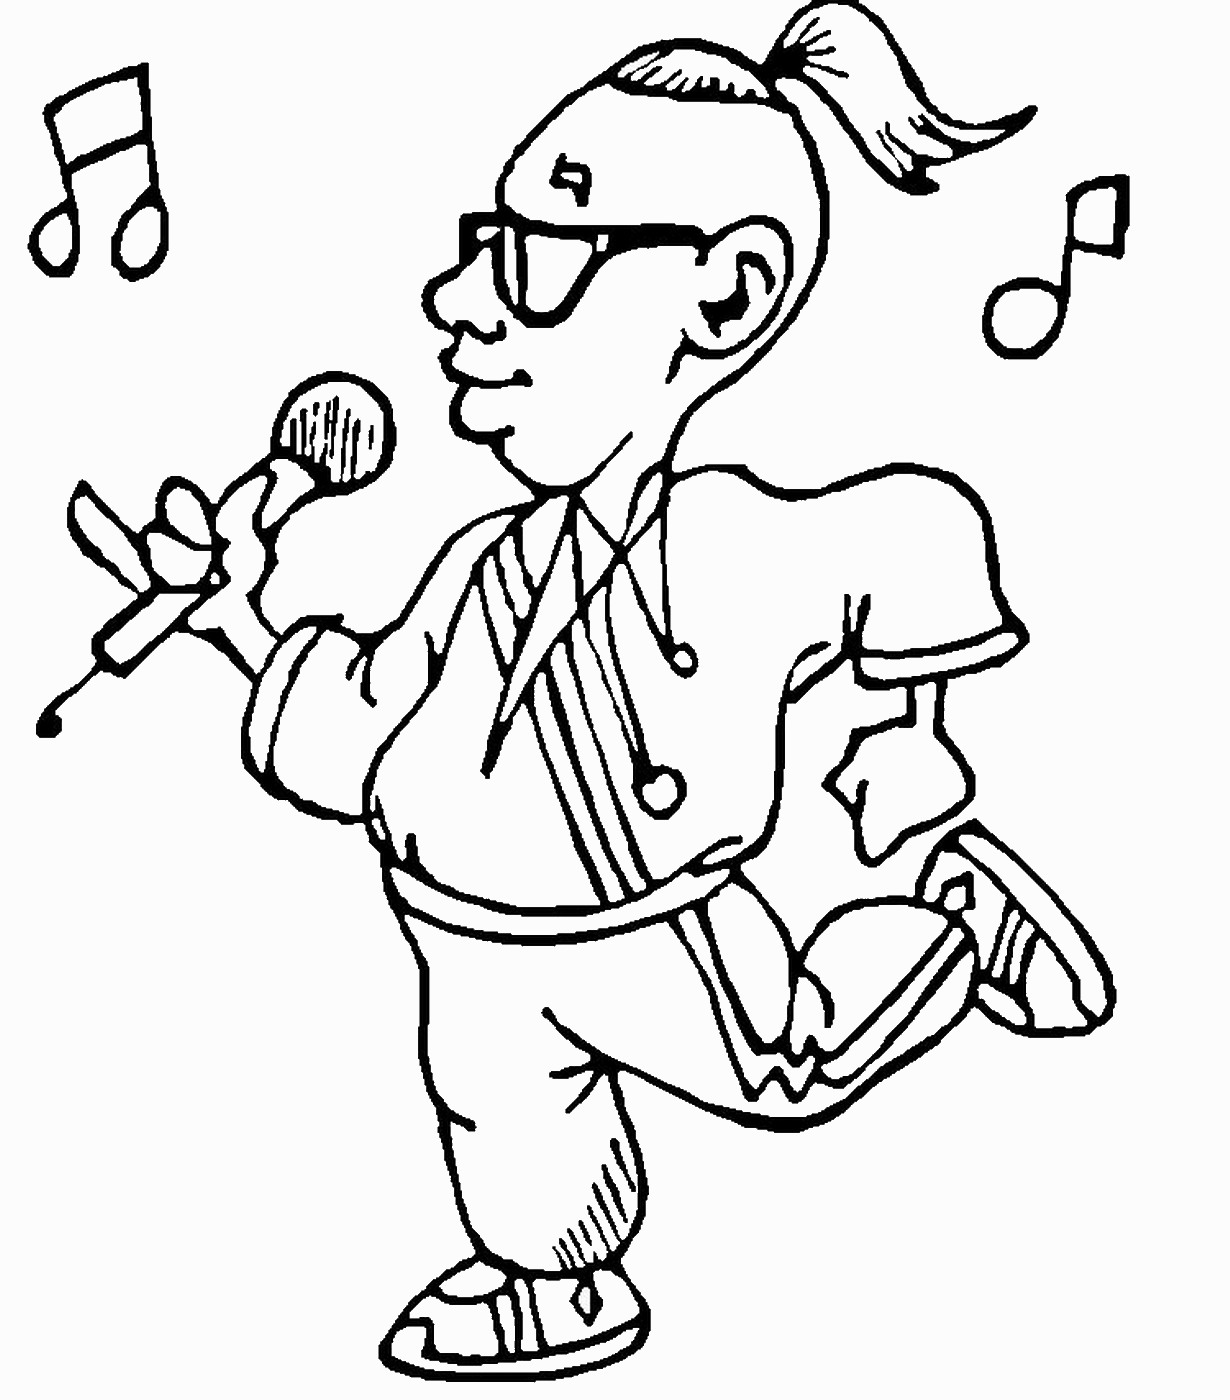 american idol coloring pages - photo#14